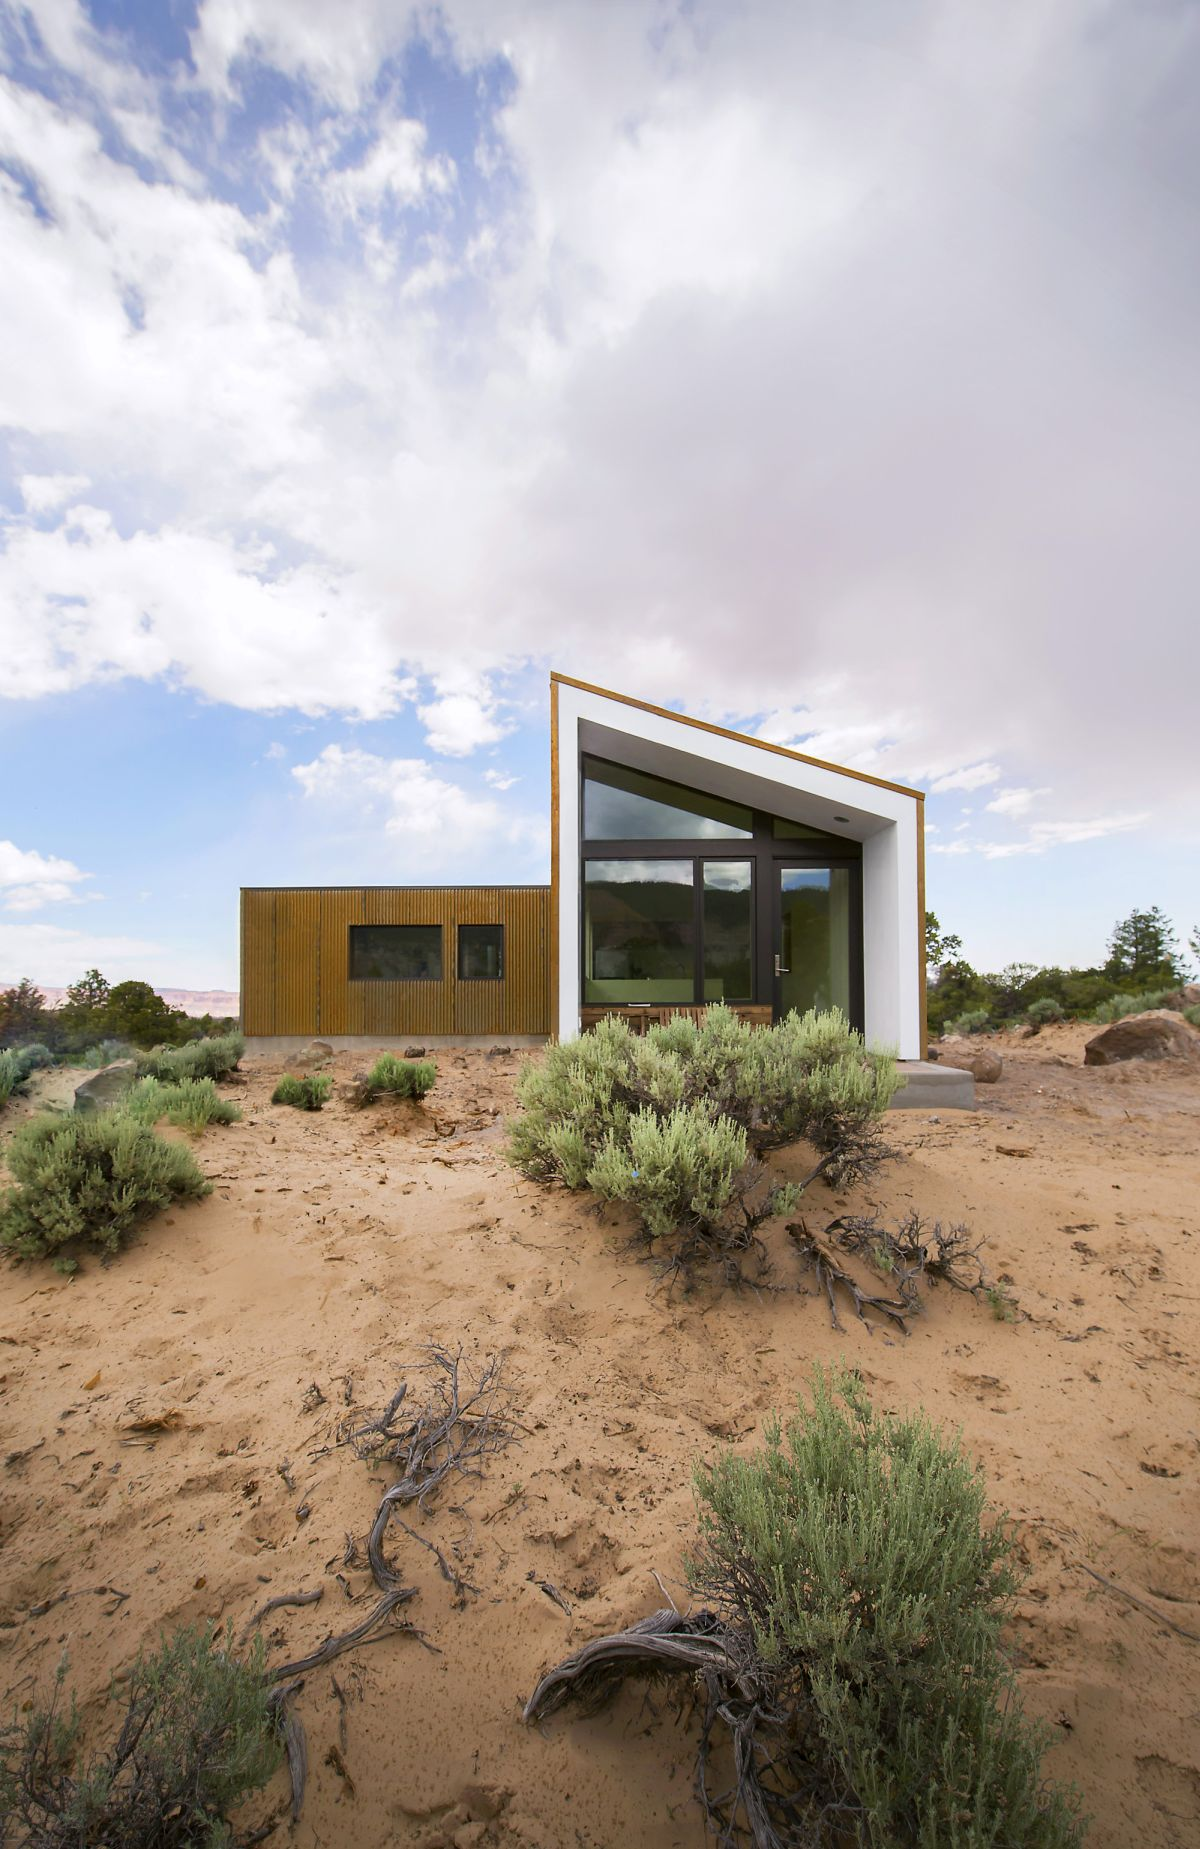 The Capitol Reef Desert Dwelling view